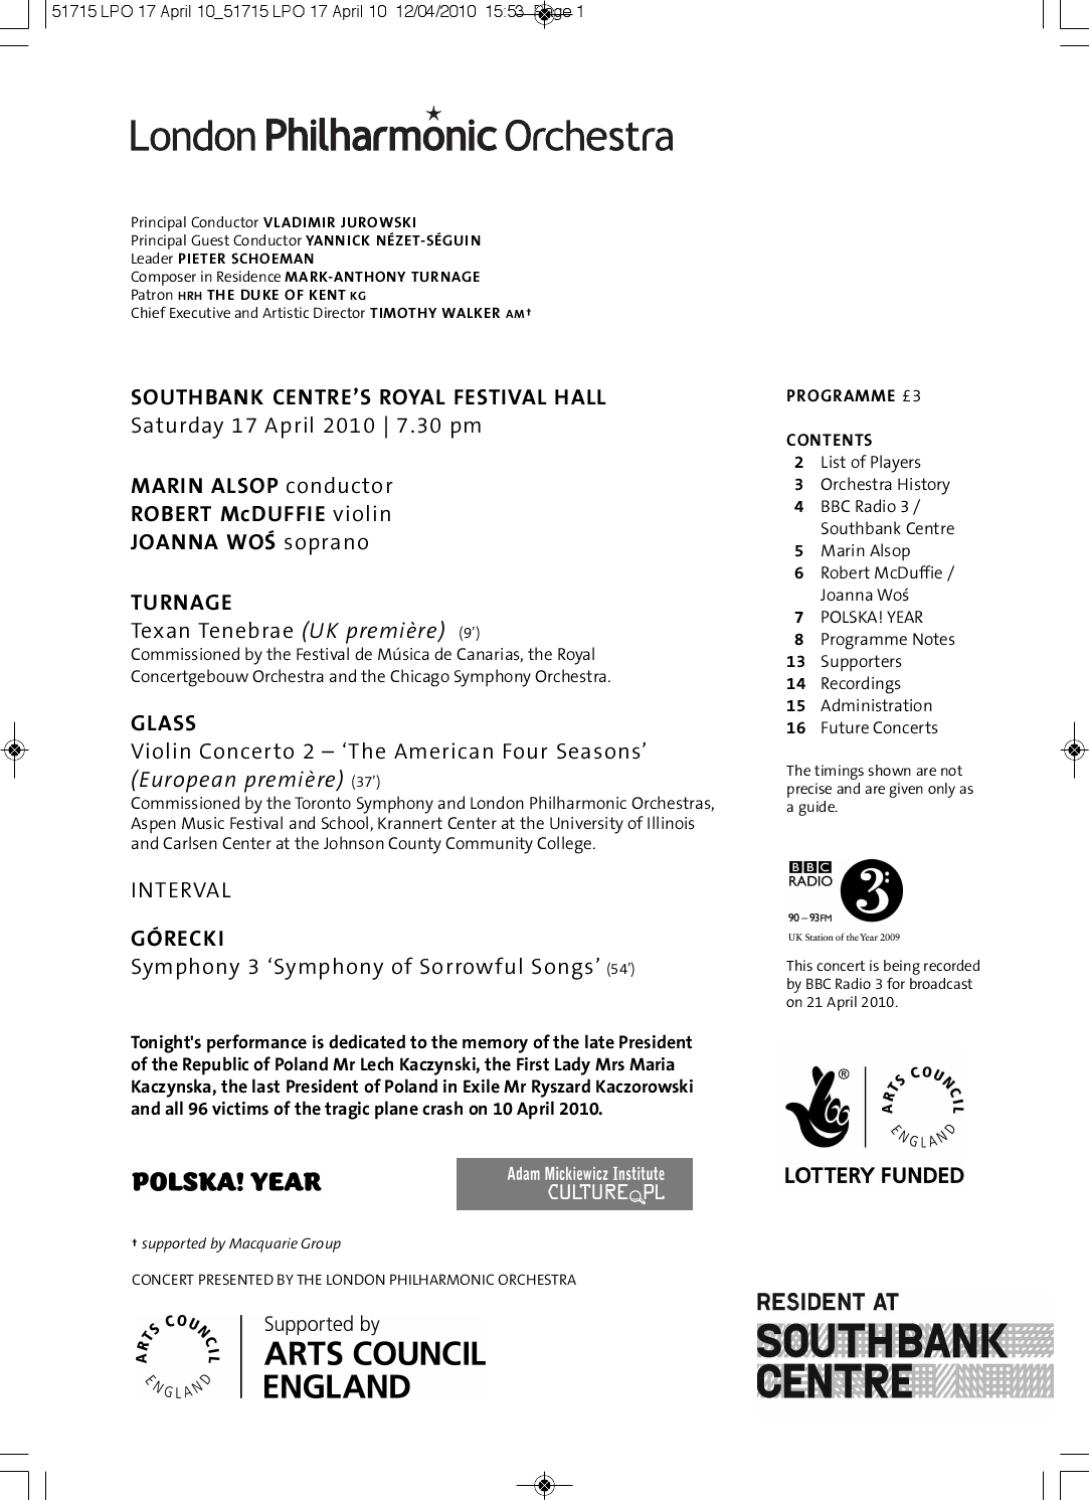 17apr10_prognotes by London Philharmonic Orchestra - issuu